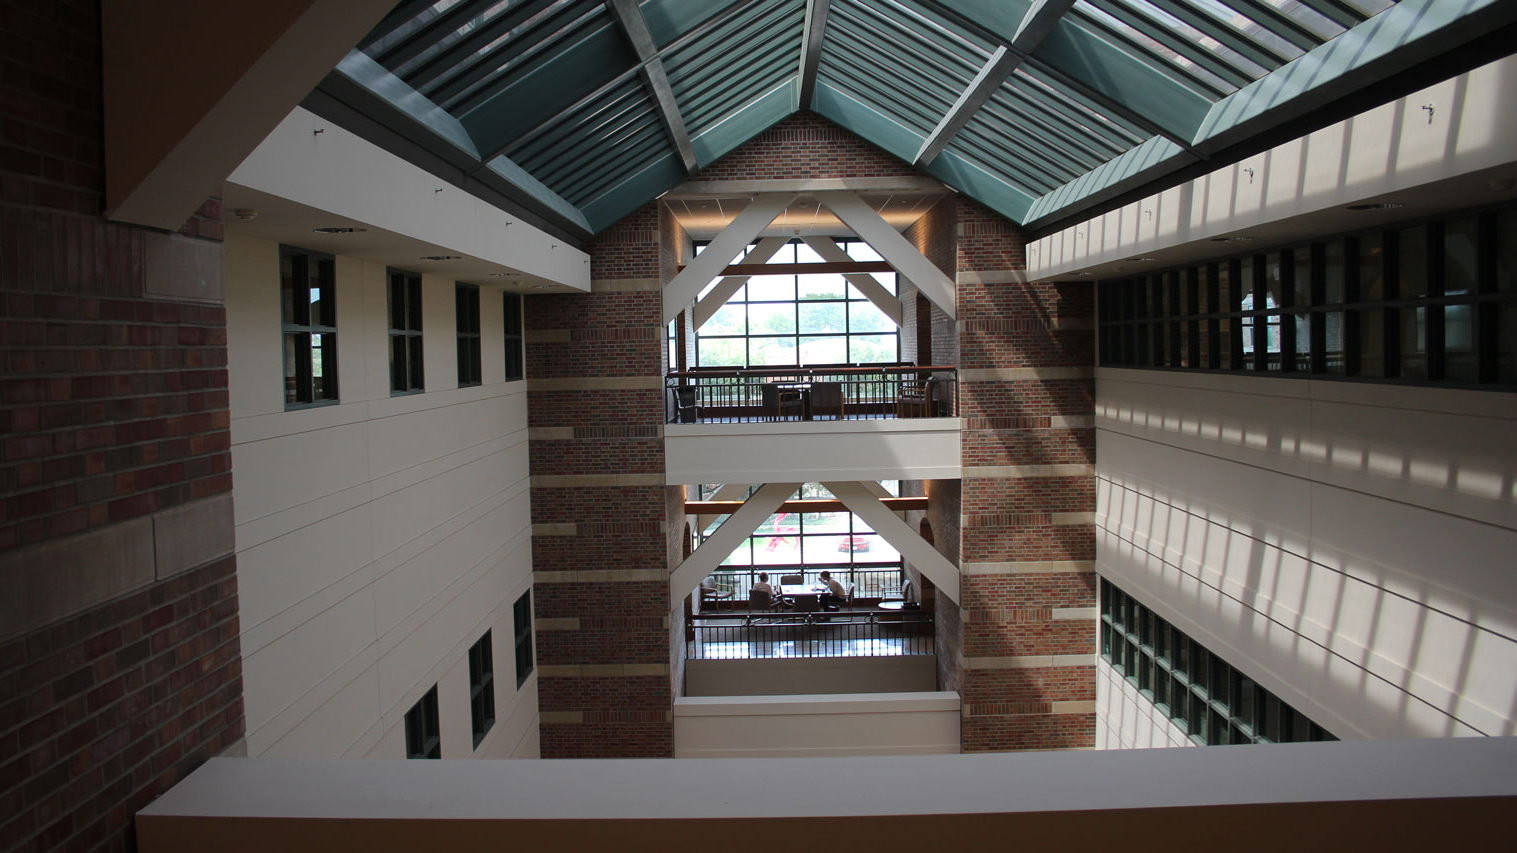 The view of Beckman's atrium from a bridge inside the building